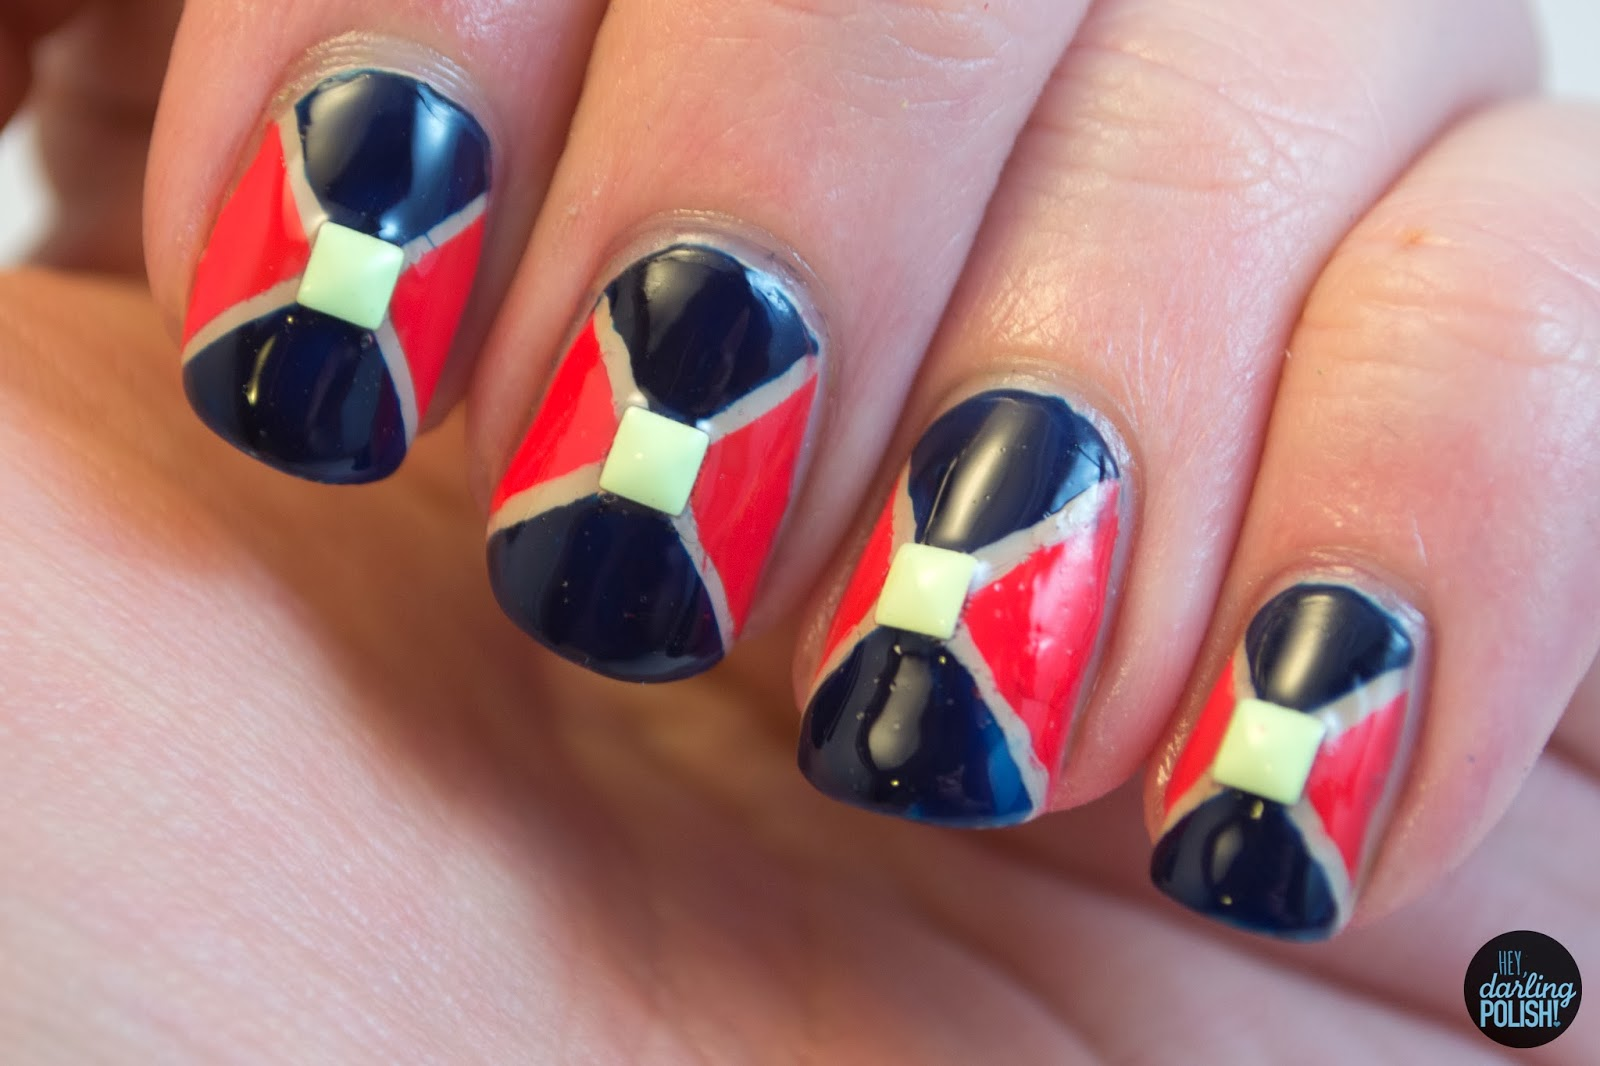 nails, nail polish, nail art, geometric, triangles, studs, hey darling polish, theme buffet,